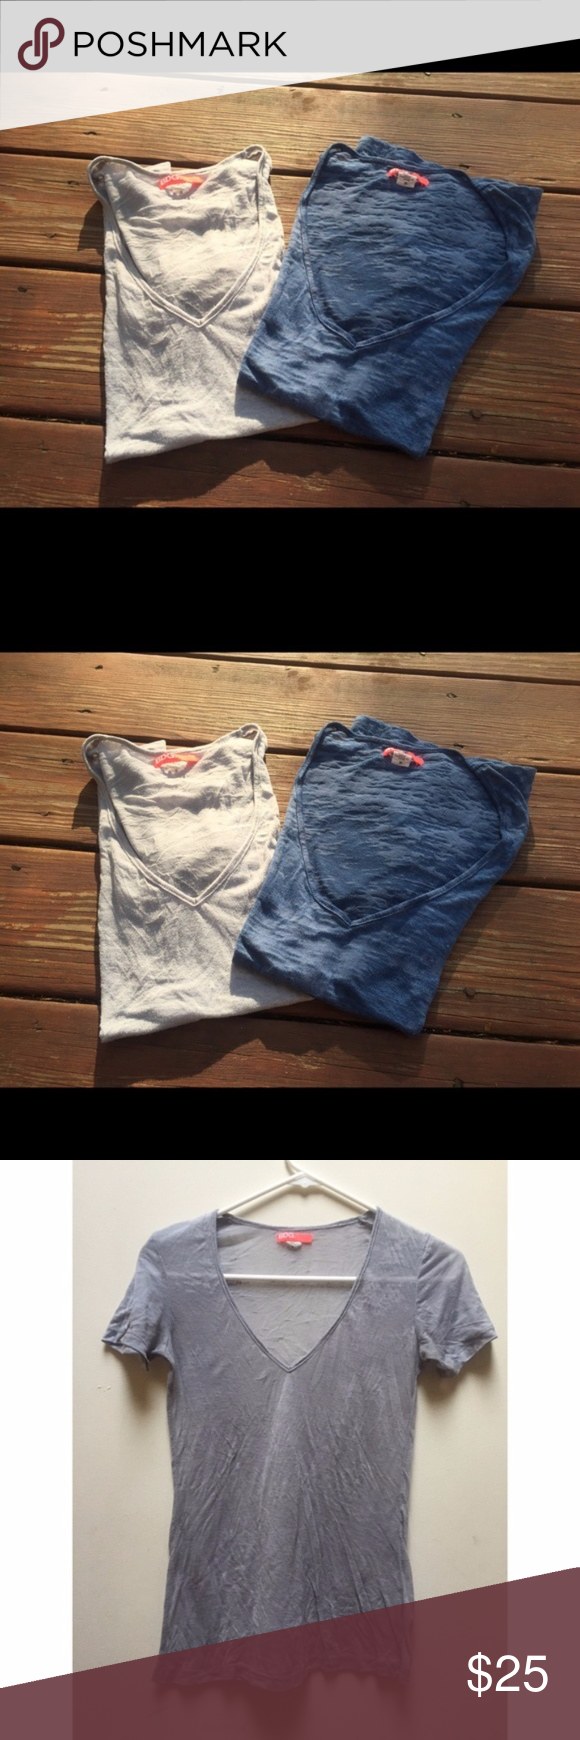 ☀️EUC 2 Urban Outfitters BDG Tee Shirts Lot Of 2 BDG by Urban Outfitters Short Sleeve V Neck Tee Shirts, both size small, one in heather blue & one in heather gray, in excellent used condition Urban Outfitters Tops Tees - Short Sleeve